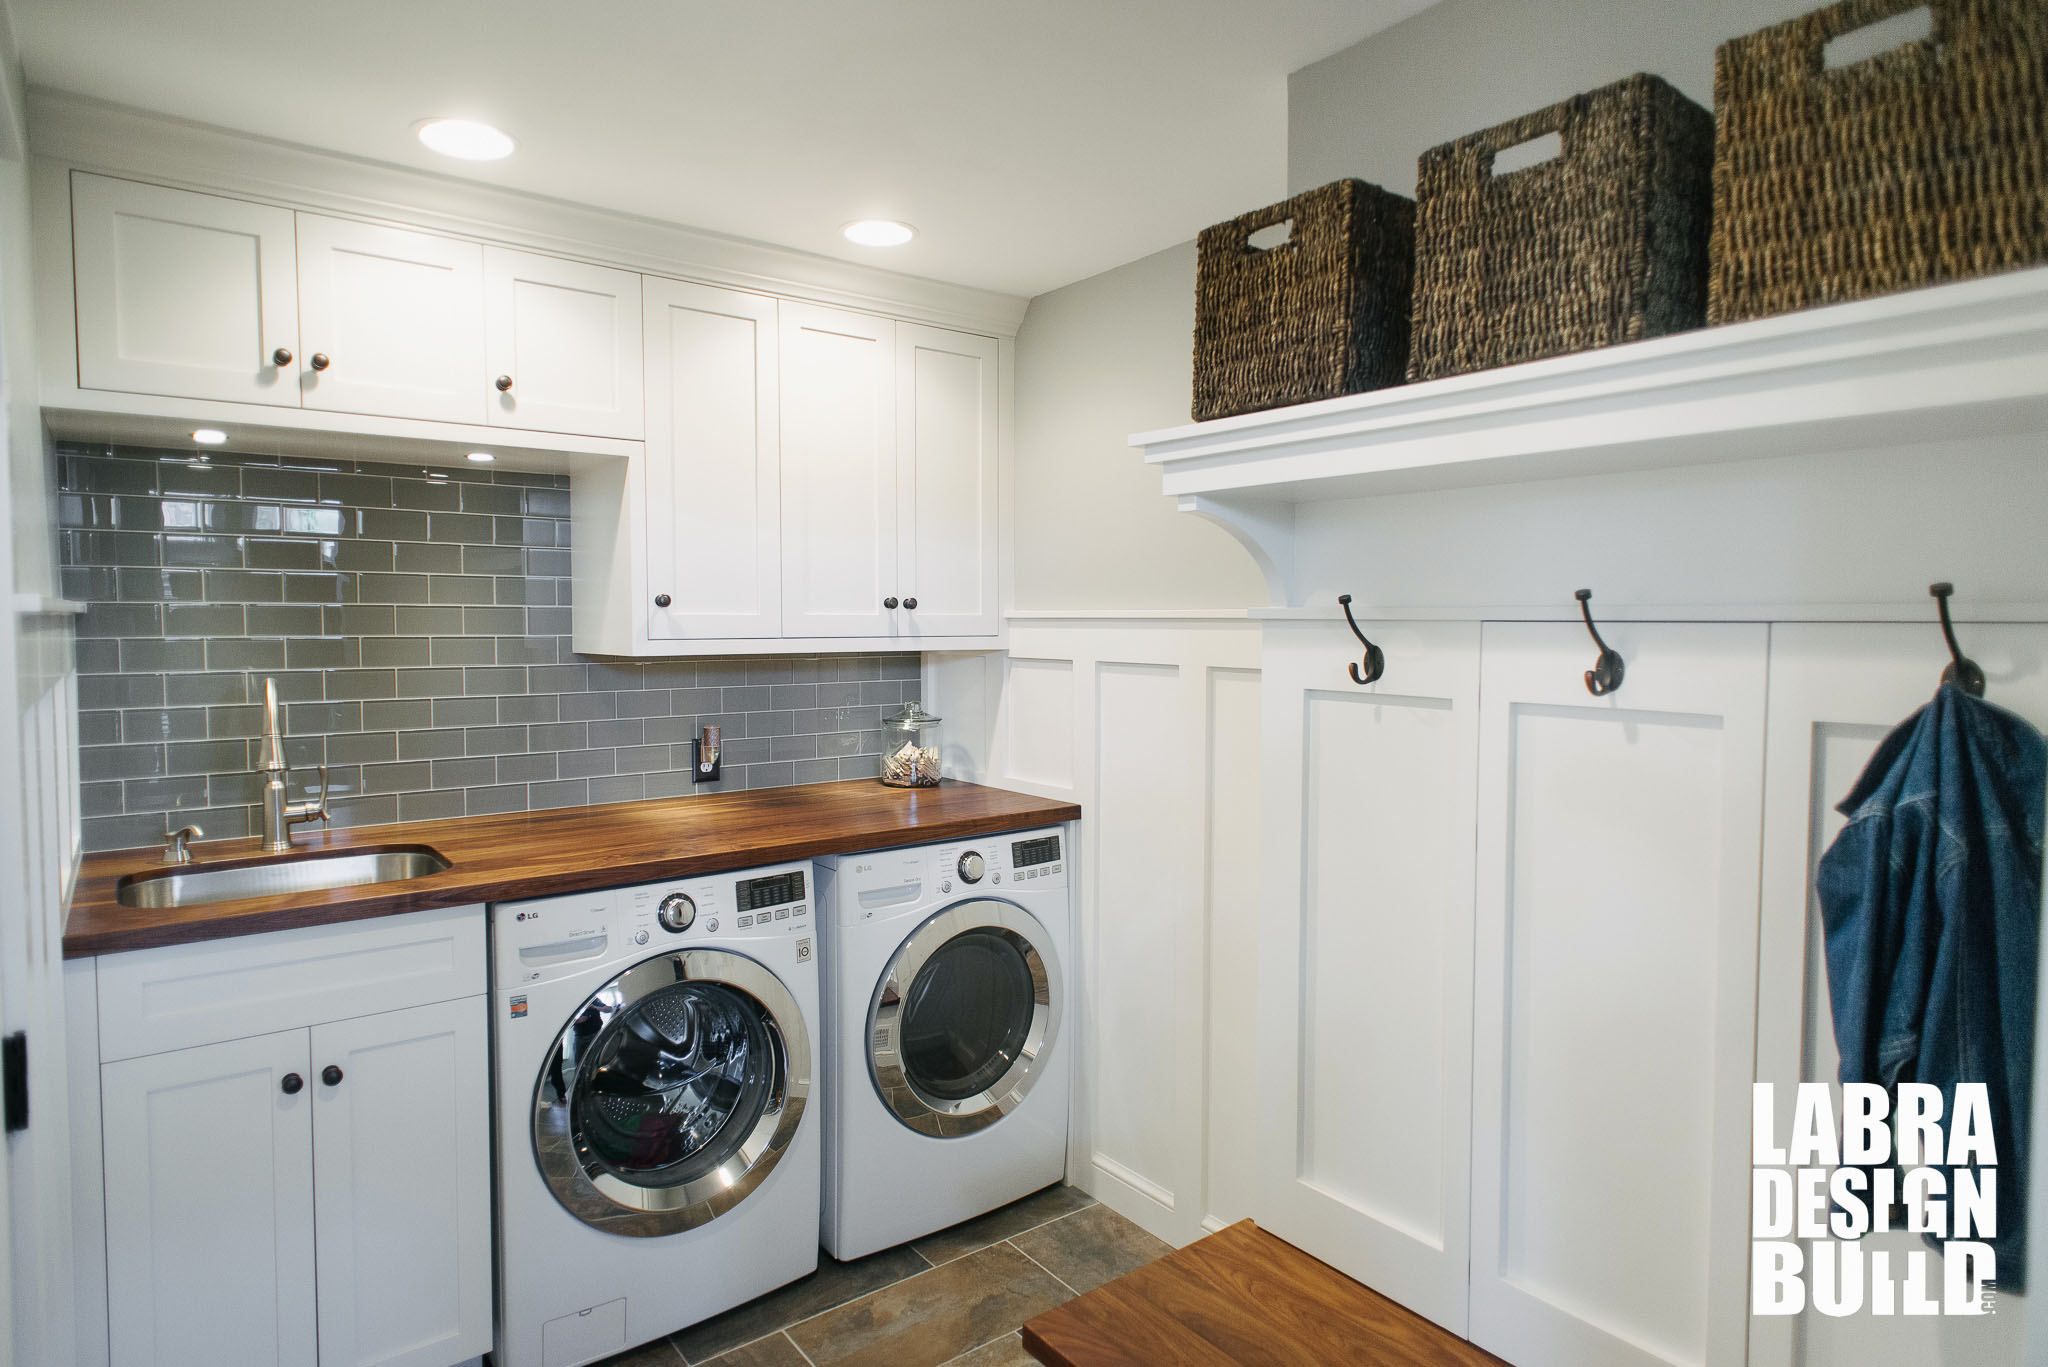 The Ultimate Laundry Room Smarter amp More Advanced  LG USA